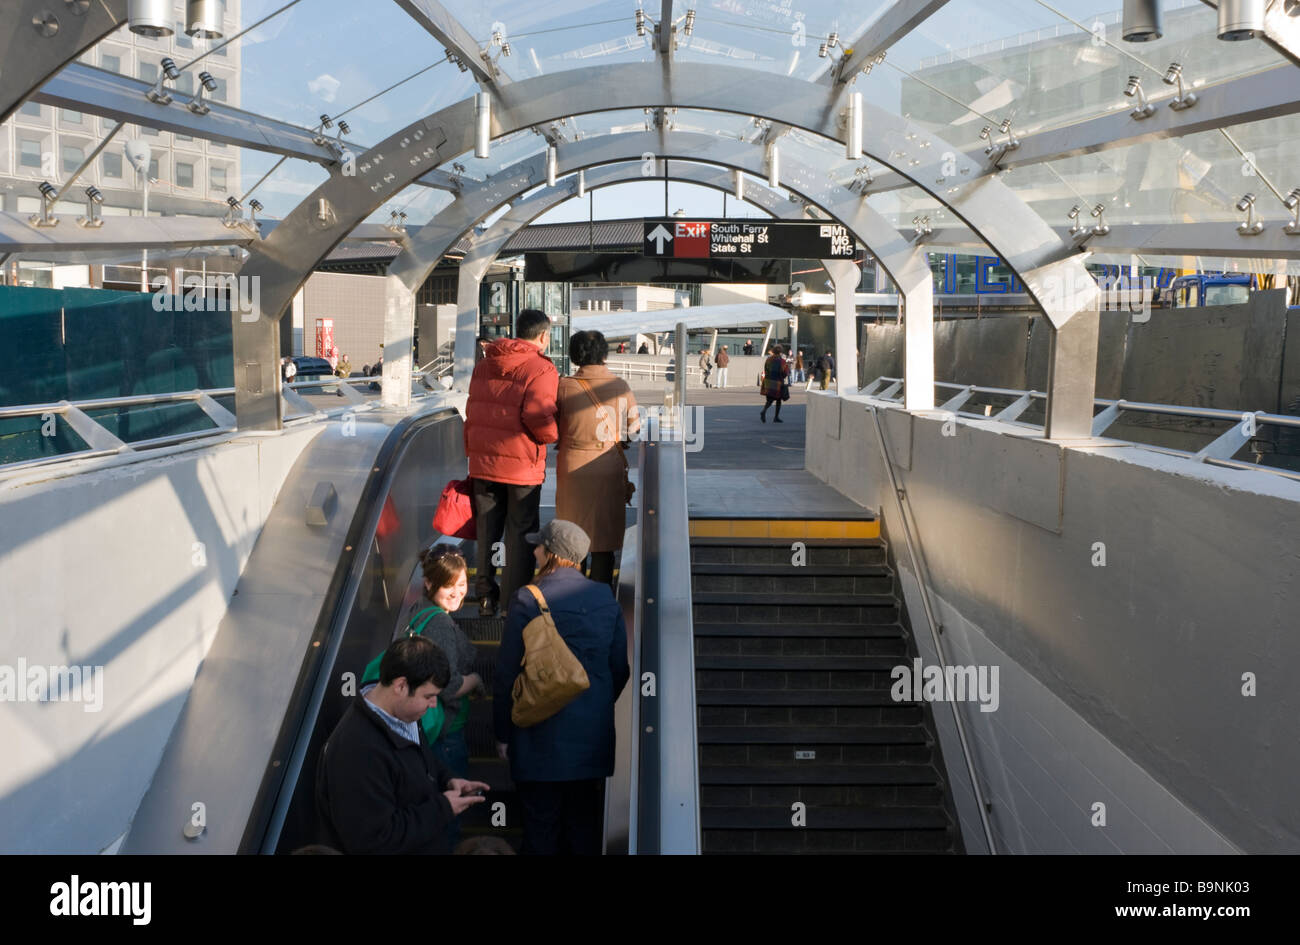 Straphangers on the escalator as they exit the brand new, state of the art, subway station at South Ferry. - Stock Image